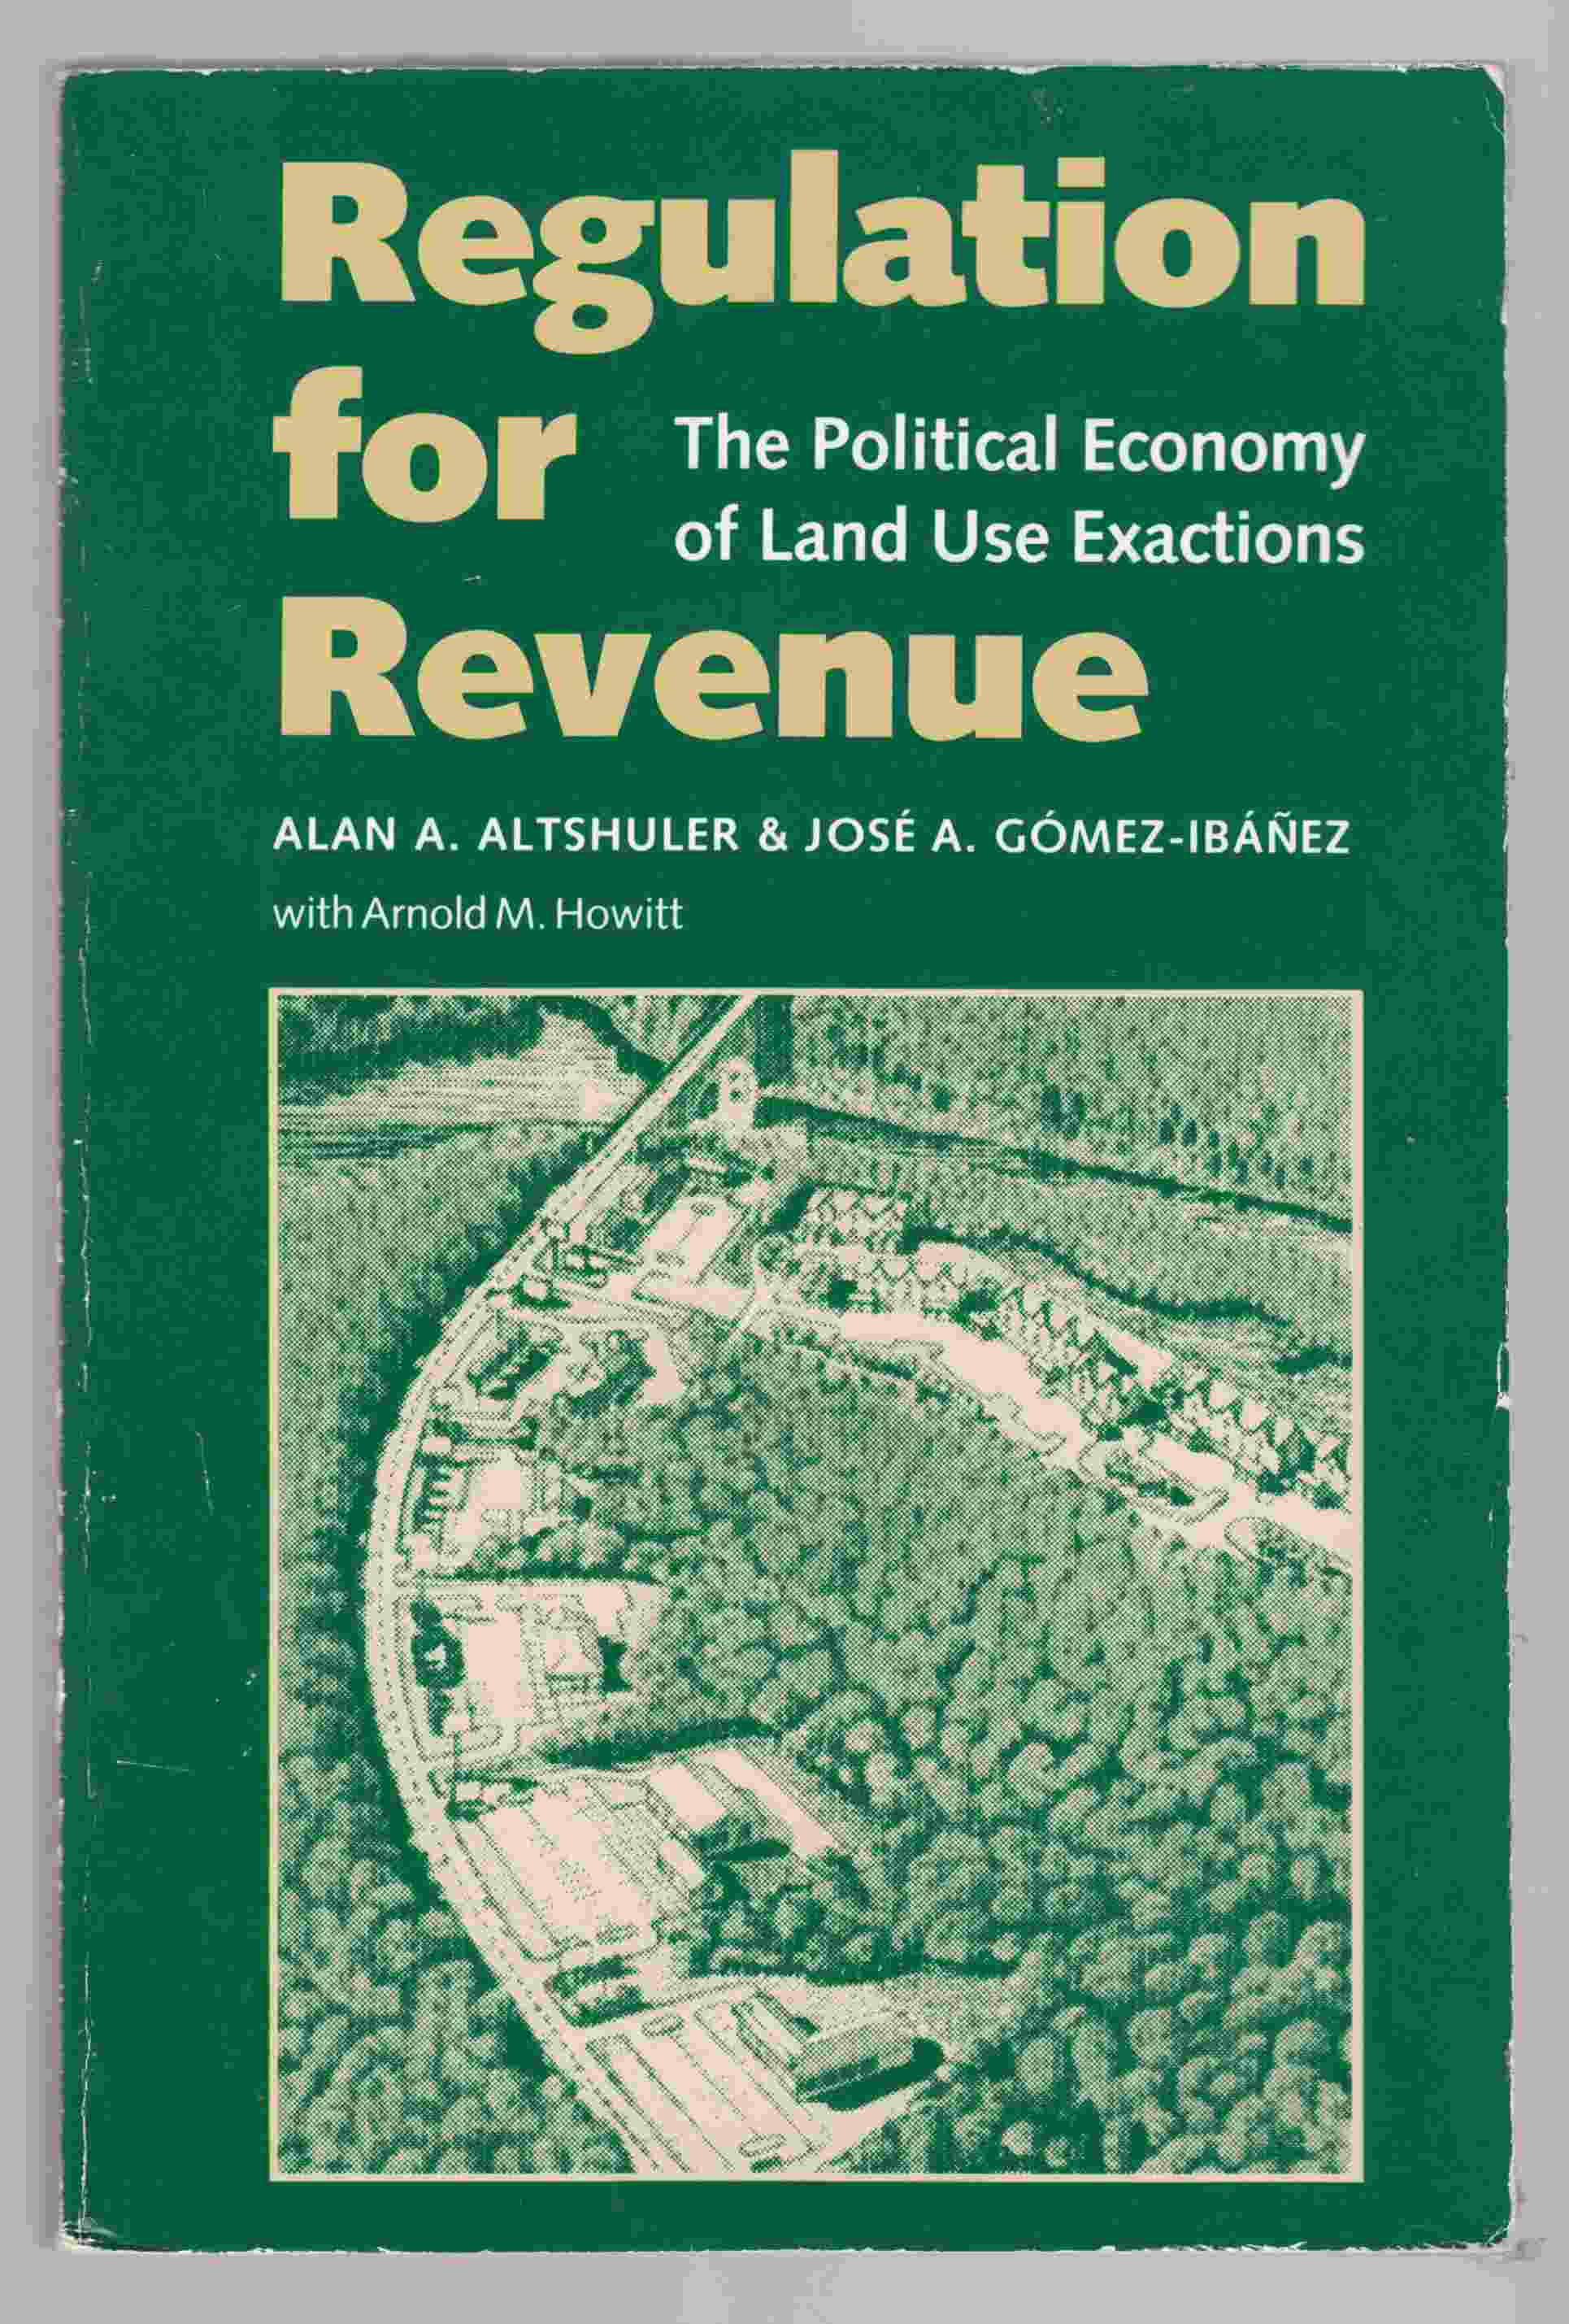 Image for Regulation for Revenue: The Political Economy of Land Use Exactions